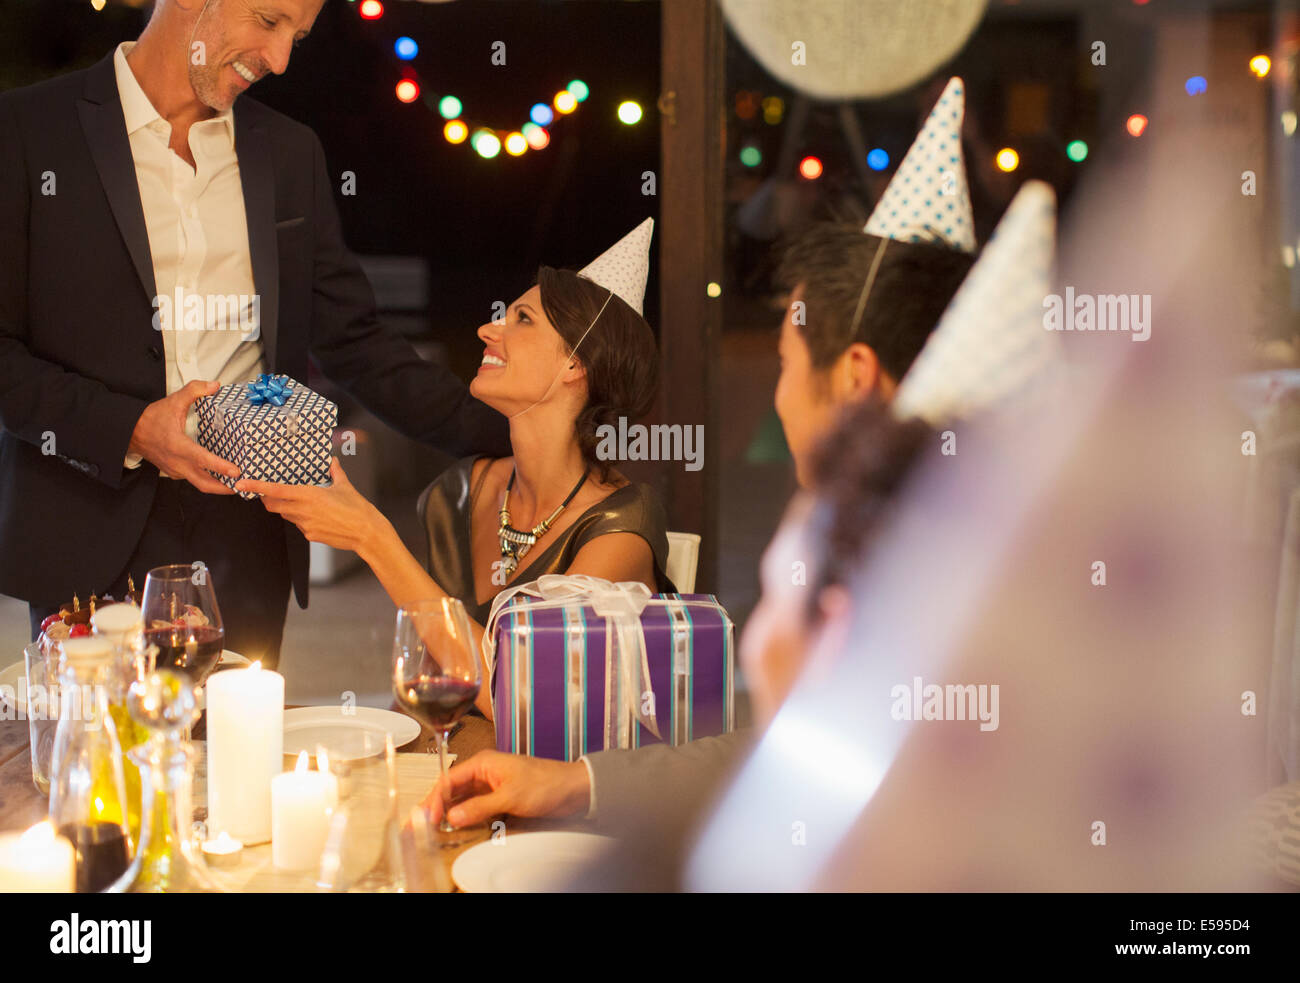 Man giving present at birthday party - Stock Image